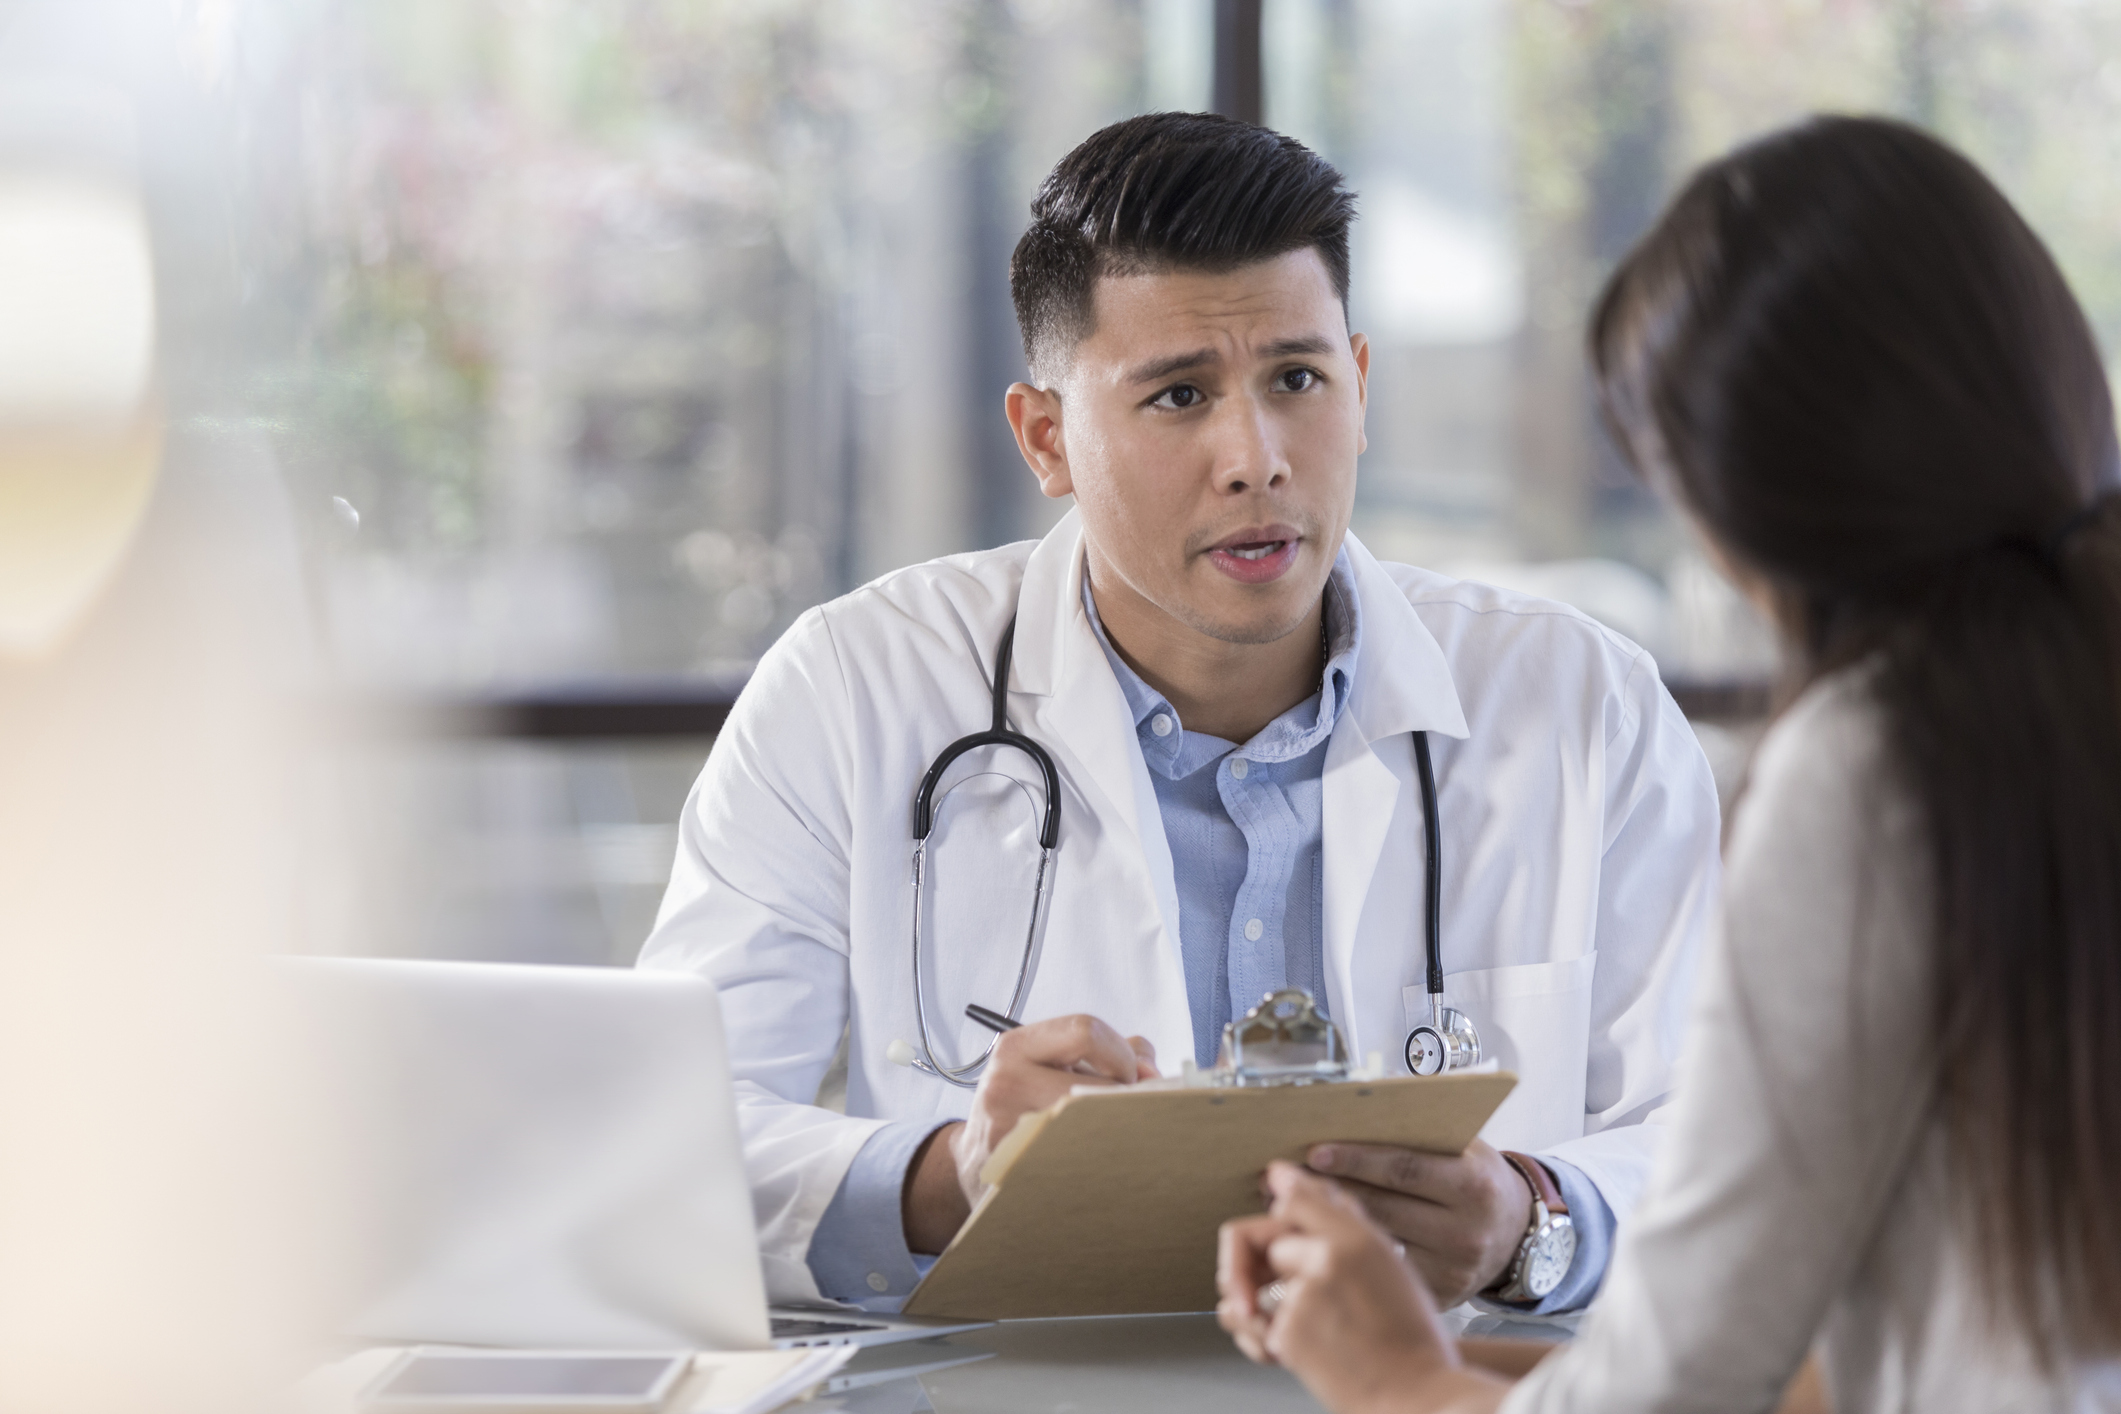 Physician discusses diagnosis with patient's parents.